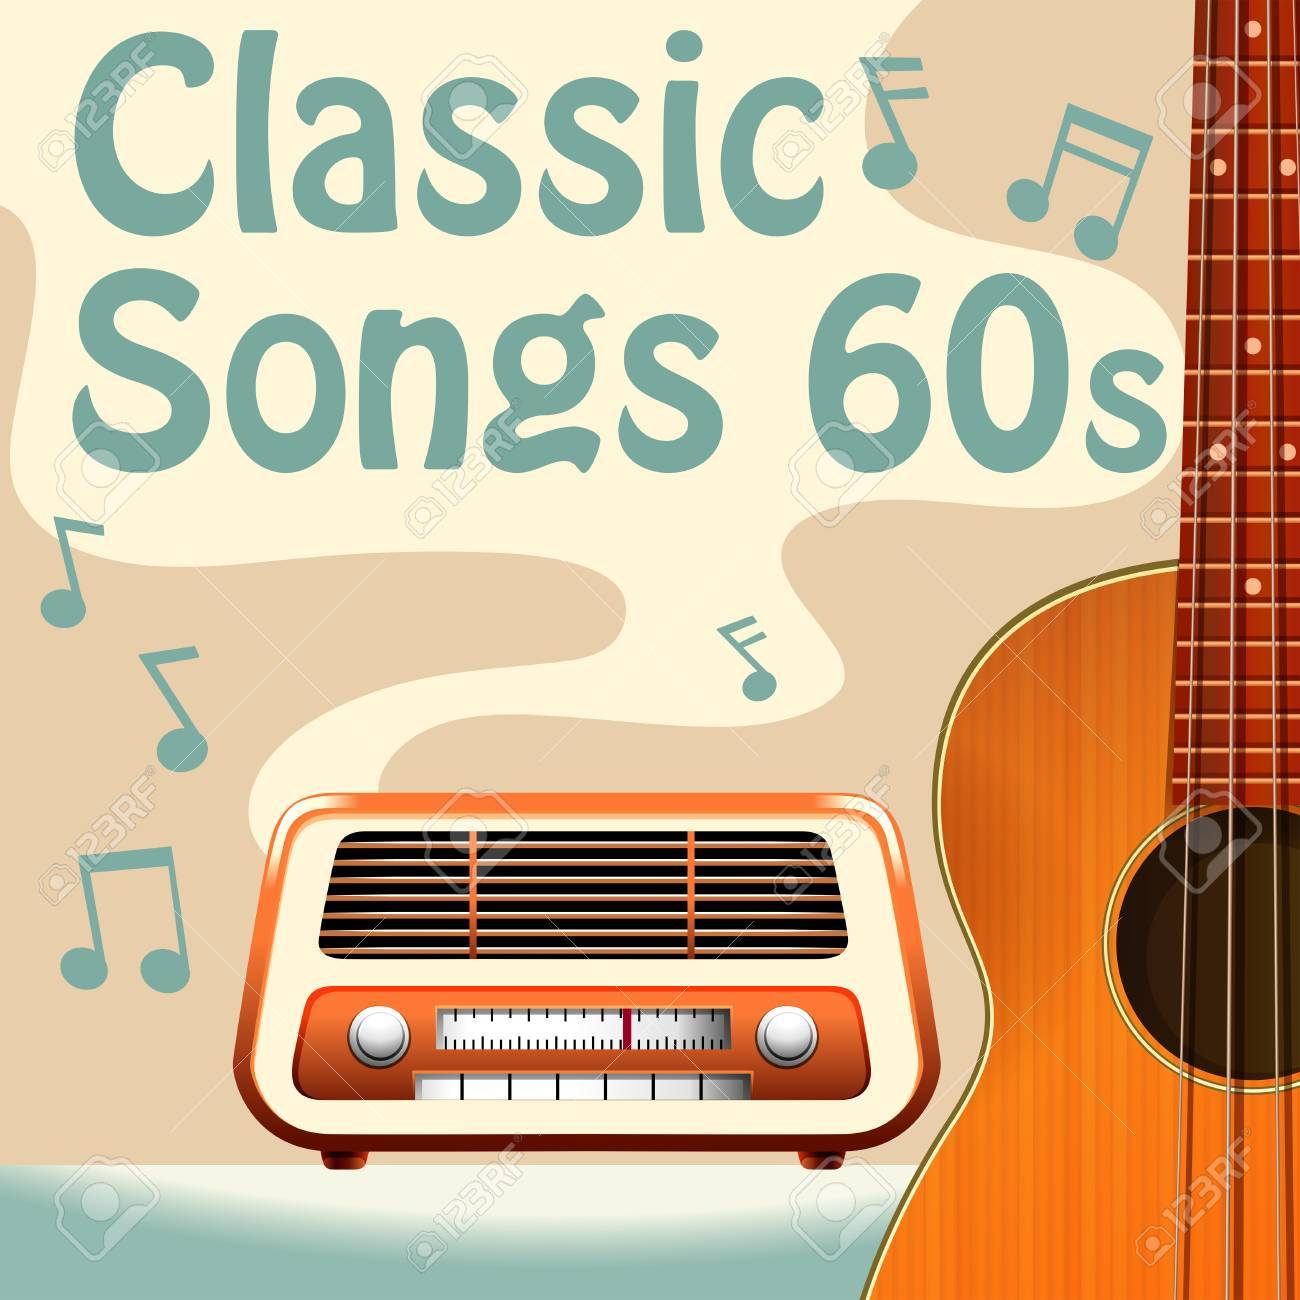 Poster of classic 60s songs with a radio and guitar